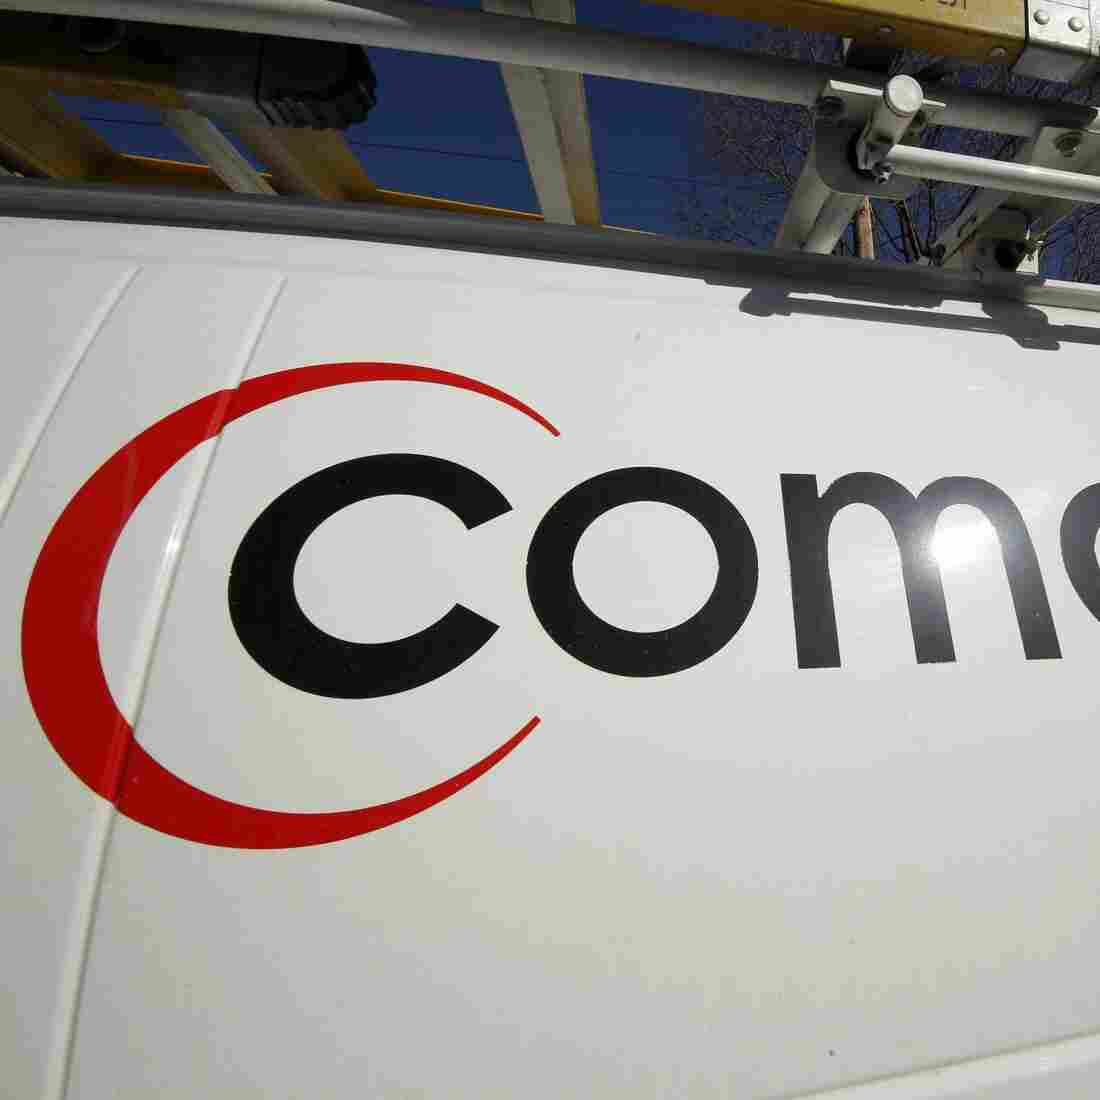 There were $3 trillion worth of corporate mergers in 2014. Comcast's proposed acquisition of fellow cable company Time Warner was the largest at $45 billion.